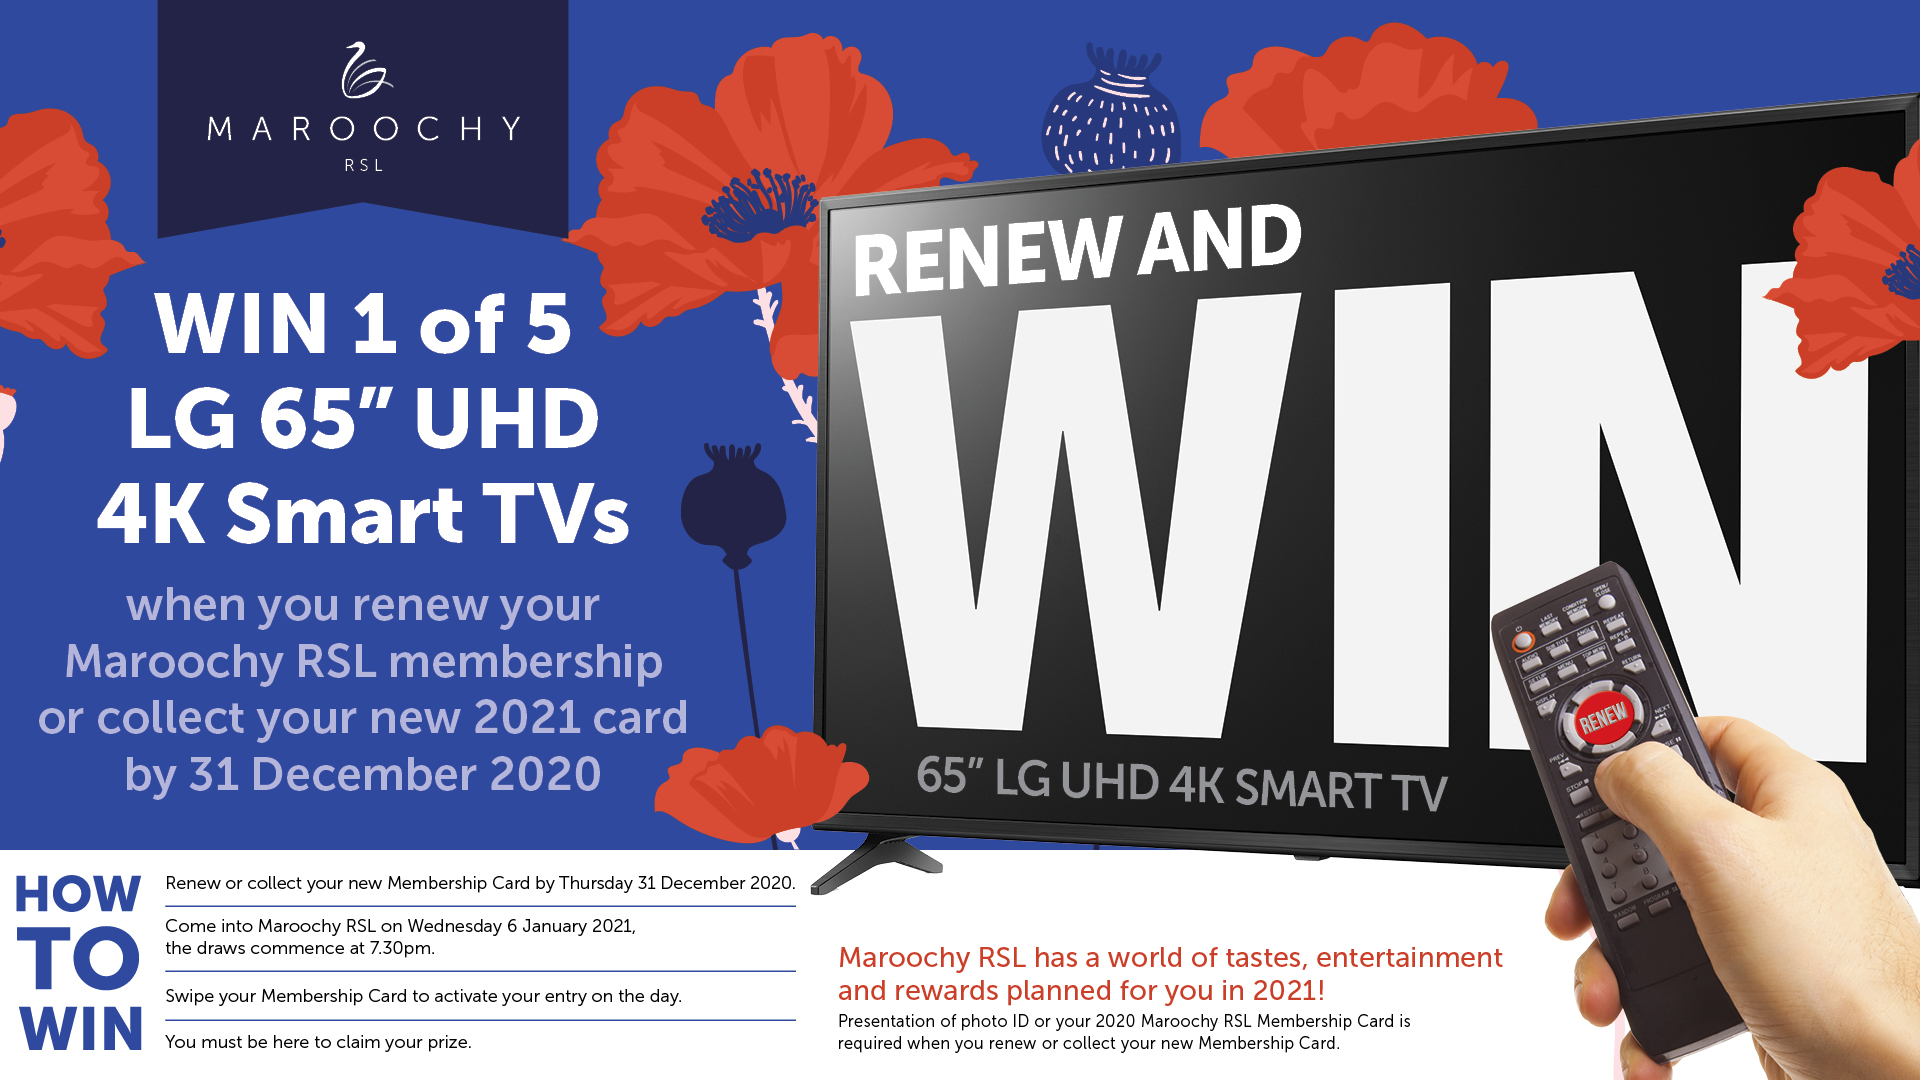 Renew and WIN!